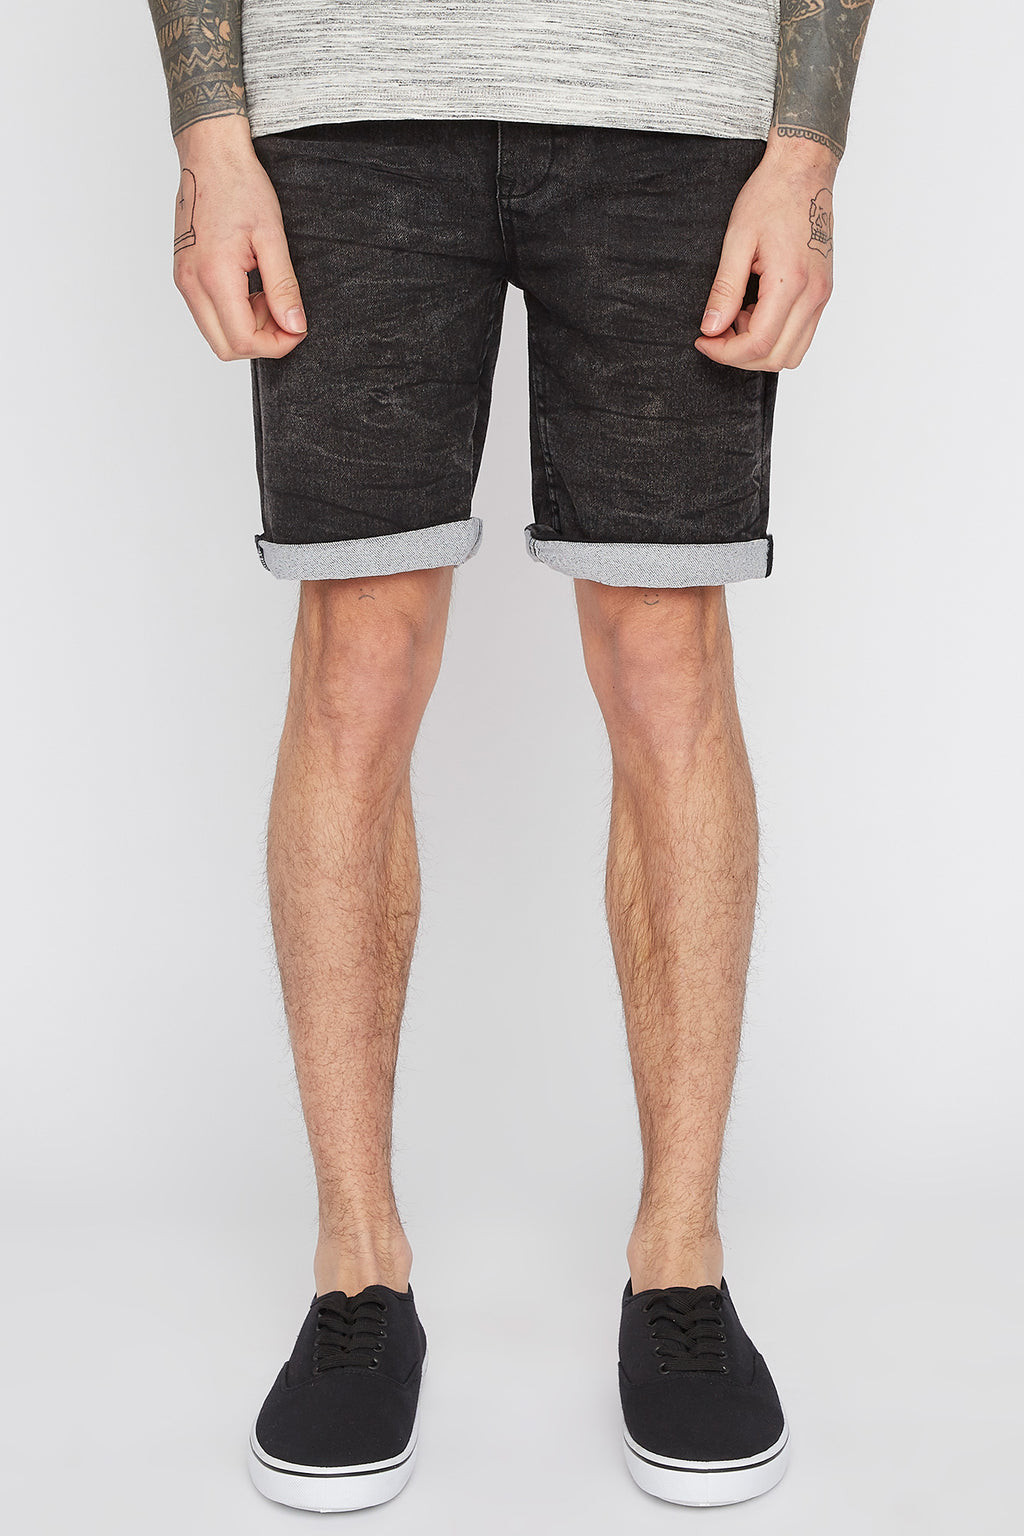 Zoo York Mens Jogger Shorts